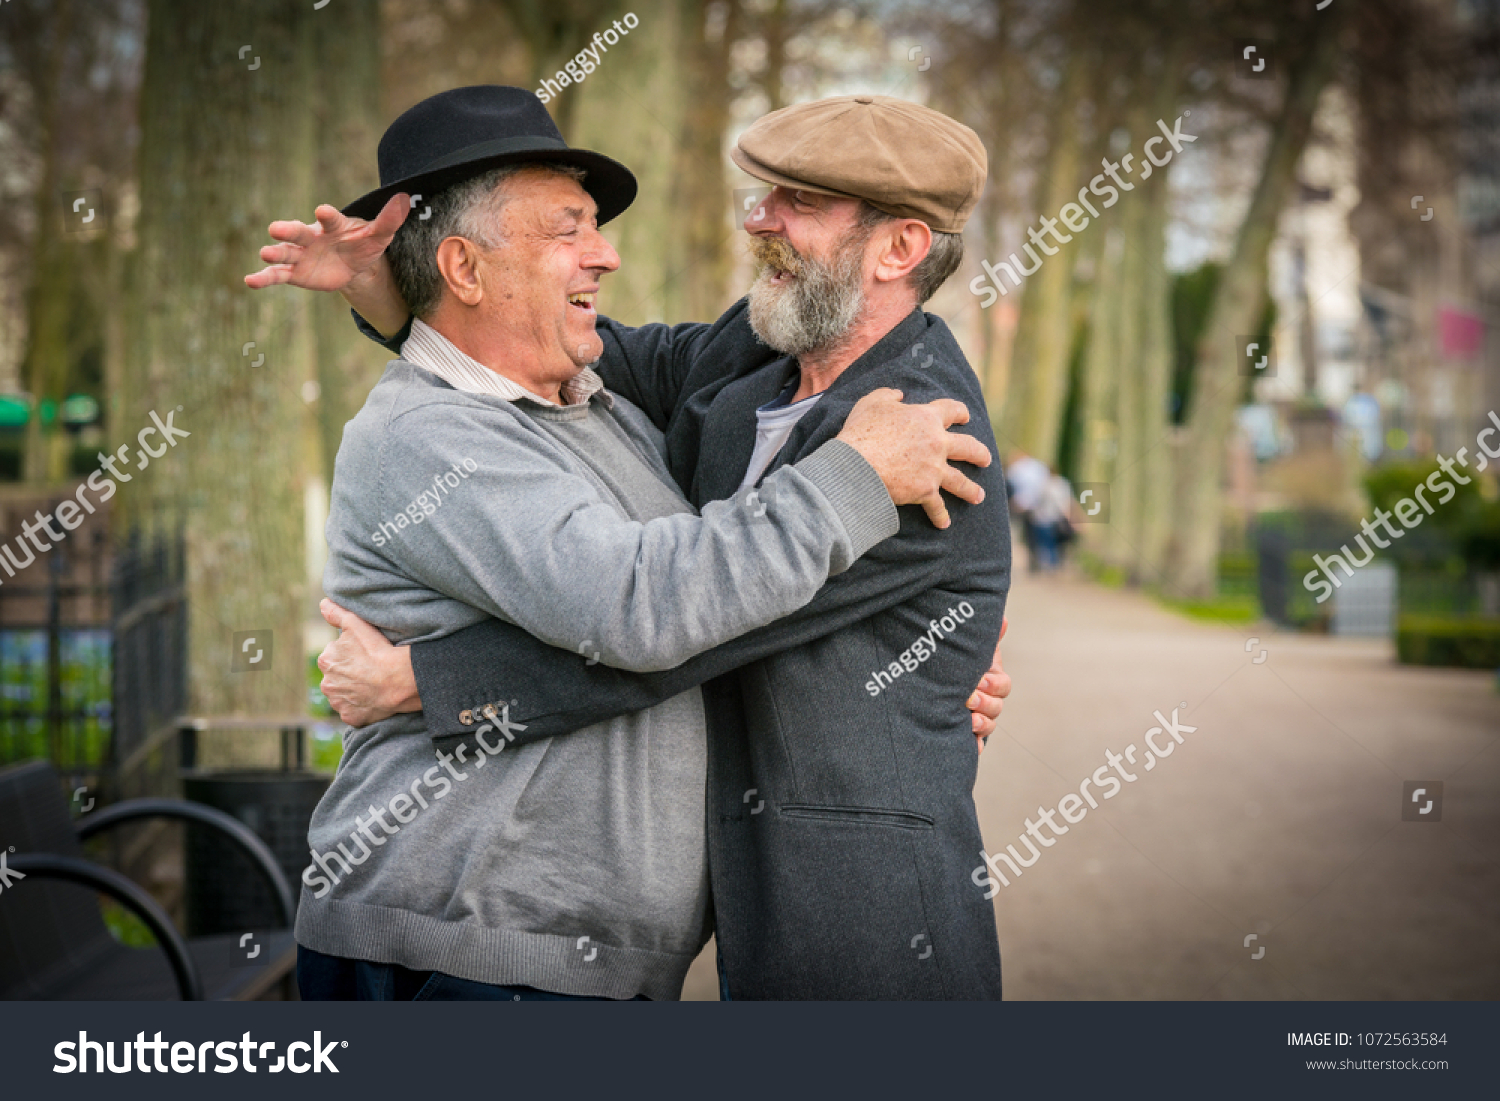 Two old friends in hats meet and hug each other in a park in Malmo Sweden